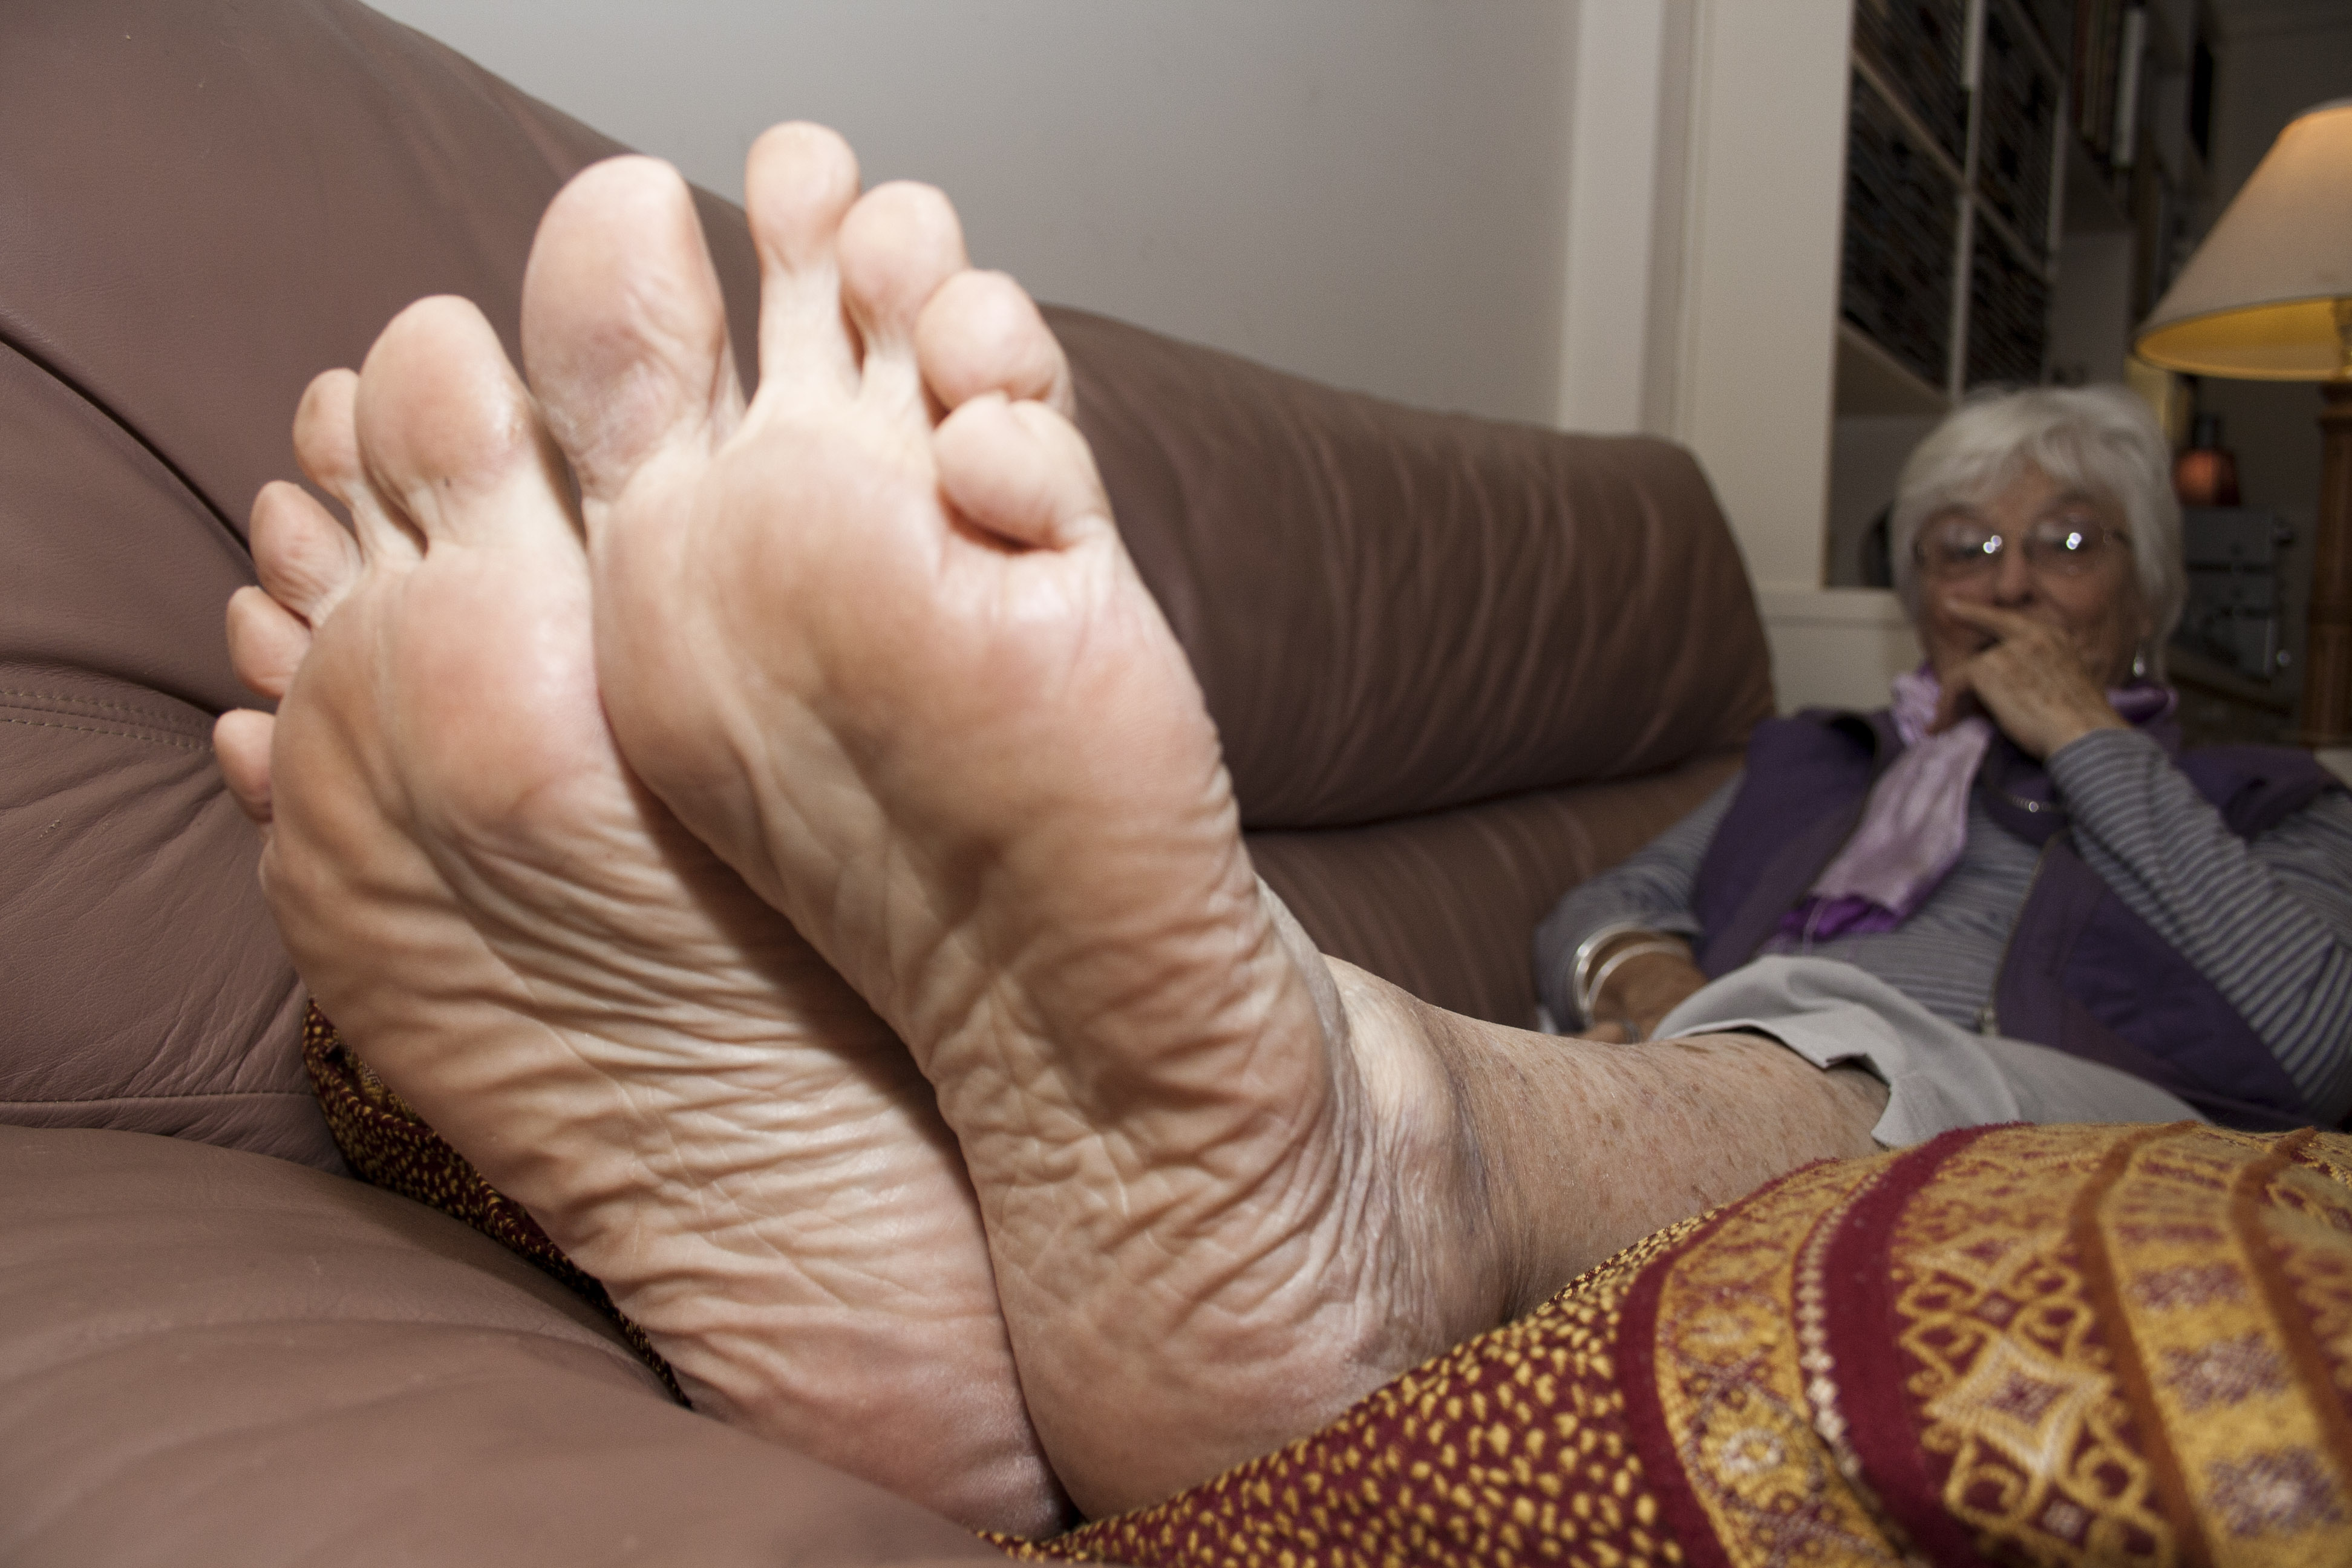 Lesbian Foot Pictures photo 23